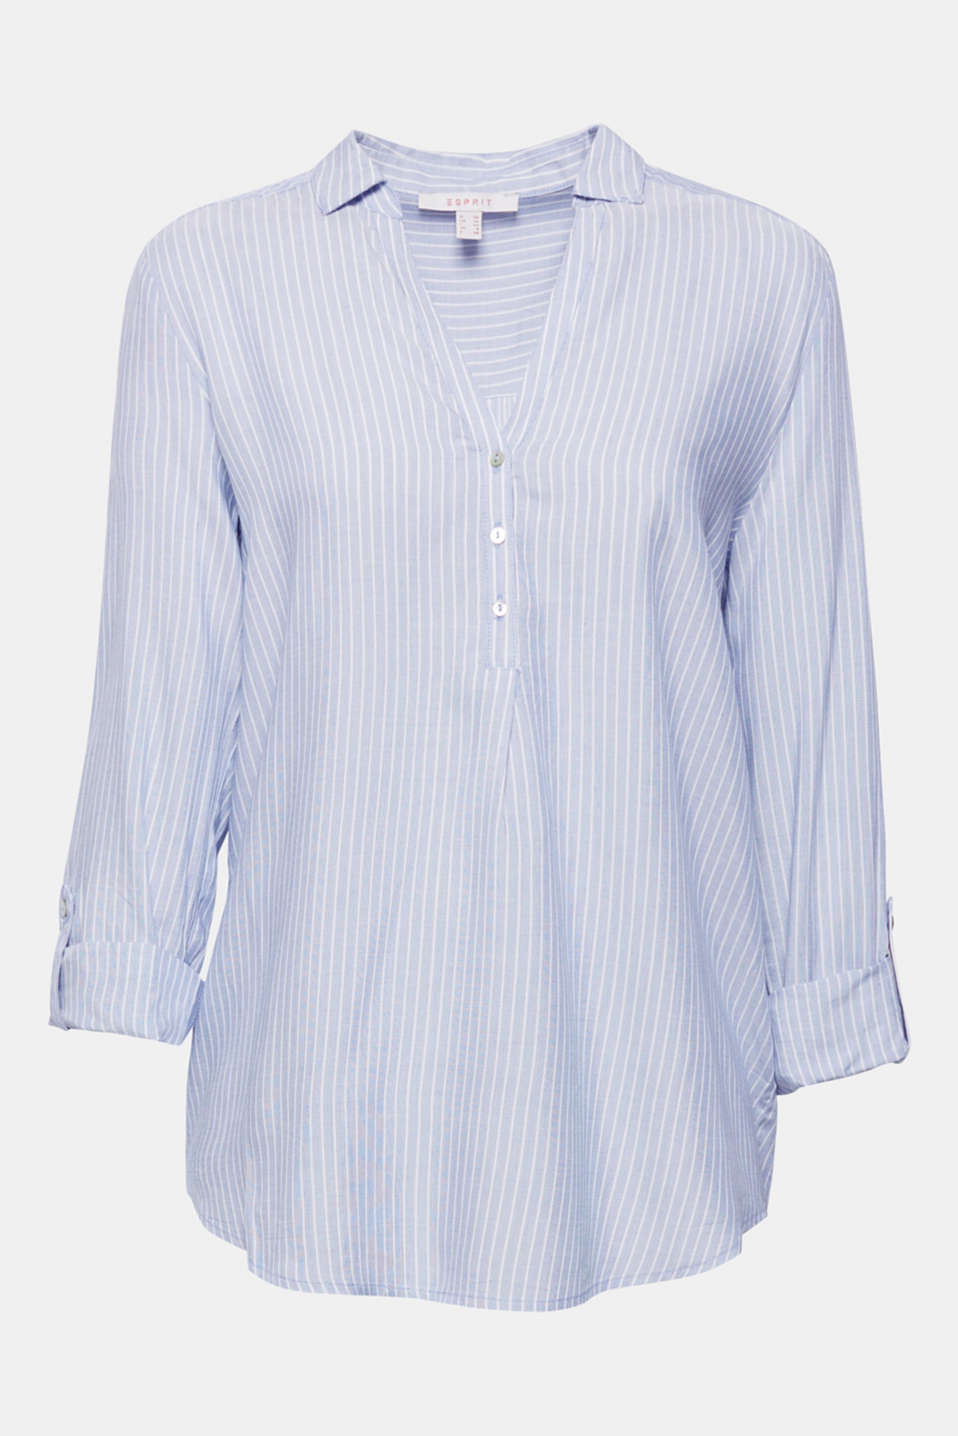 Shirt blouse with stripes and turn-up sleeves, PASTEL BLUE, detail image number 6